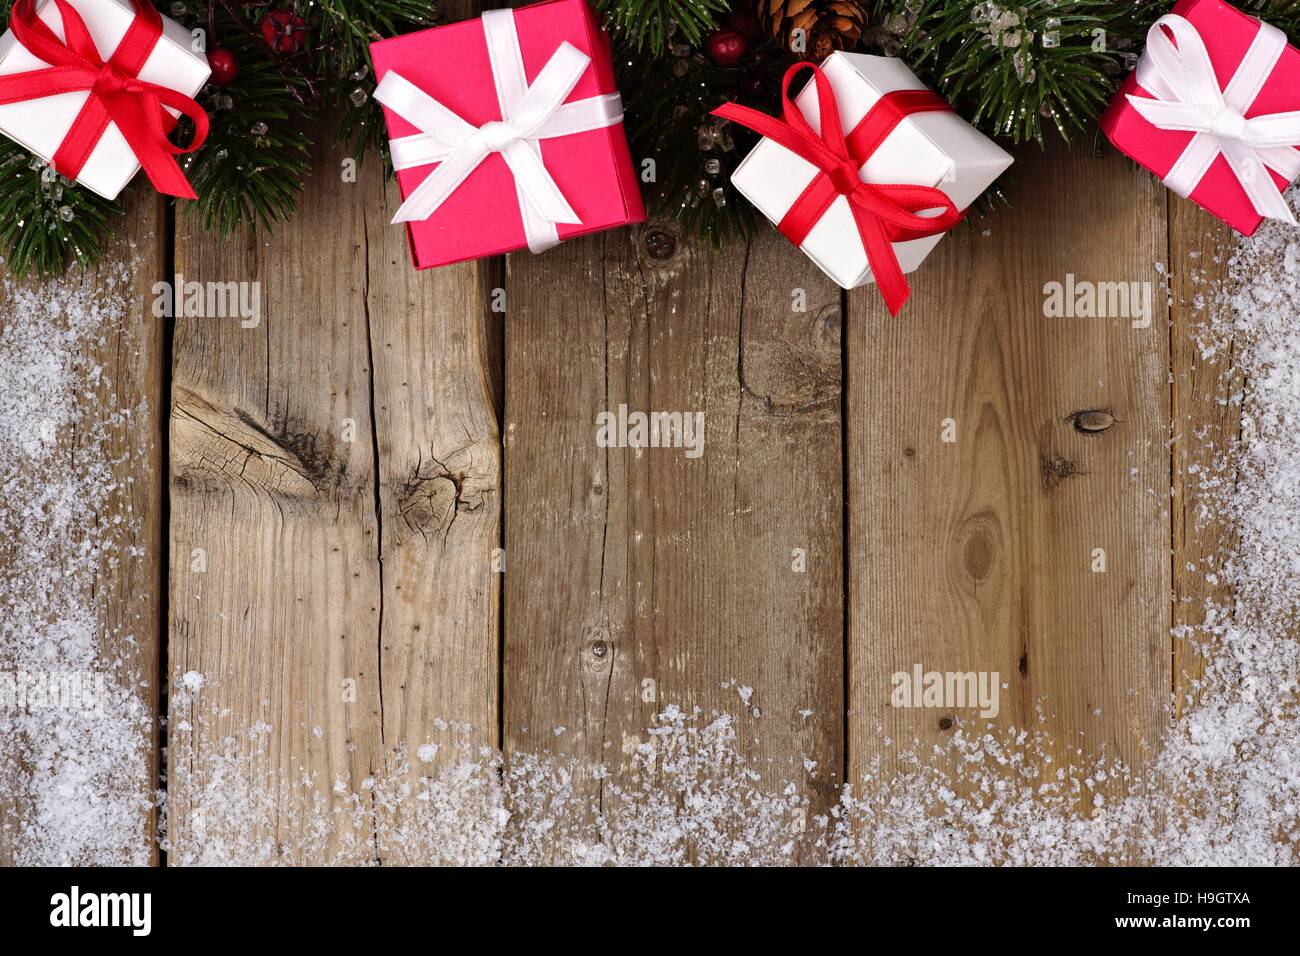 Red And White Christmas Gift Top Border With Branches Snow Frame On A Rustic Wood Background